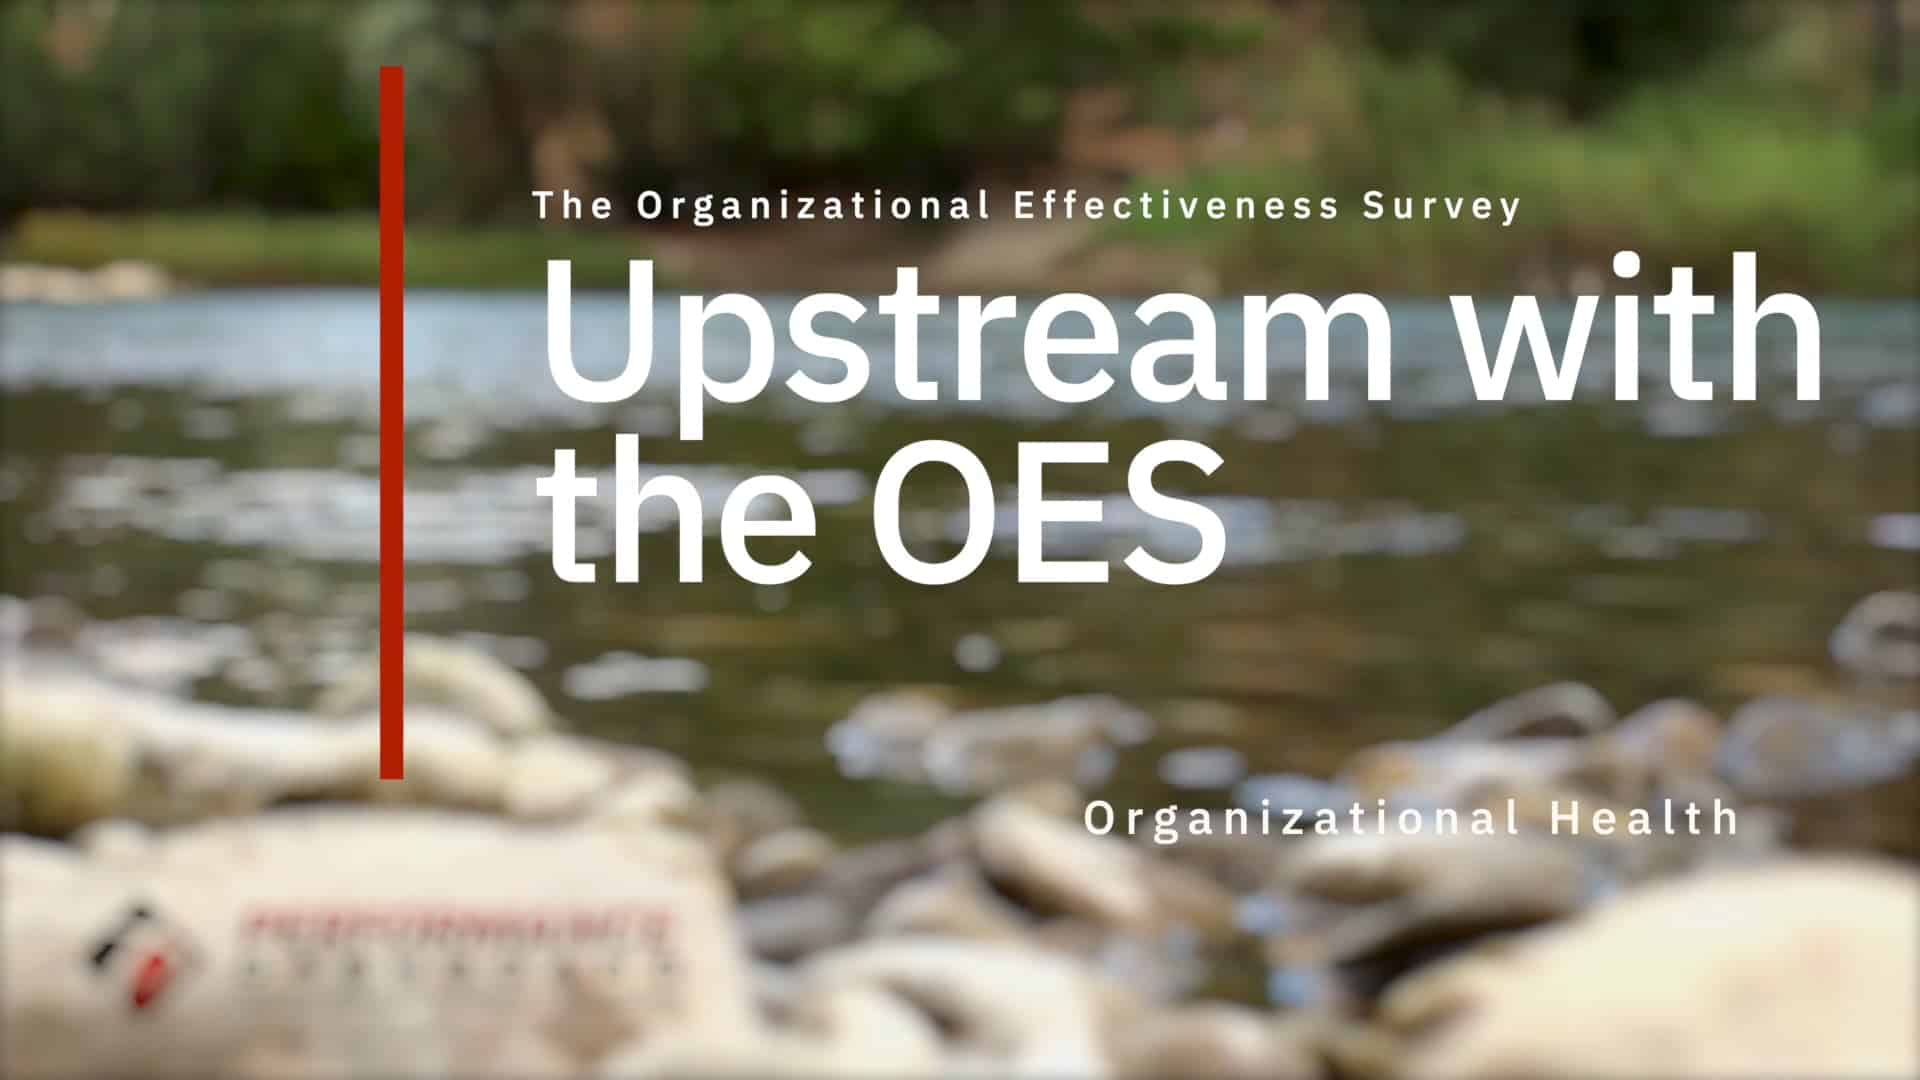 Upstream with the Organizational Effectiveness Survey